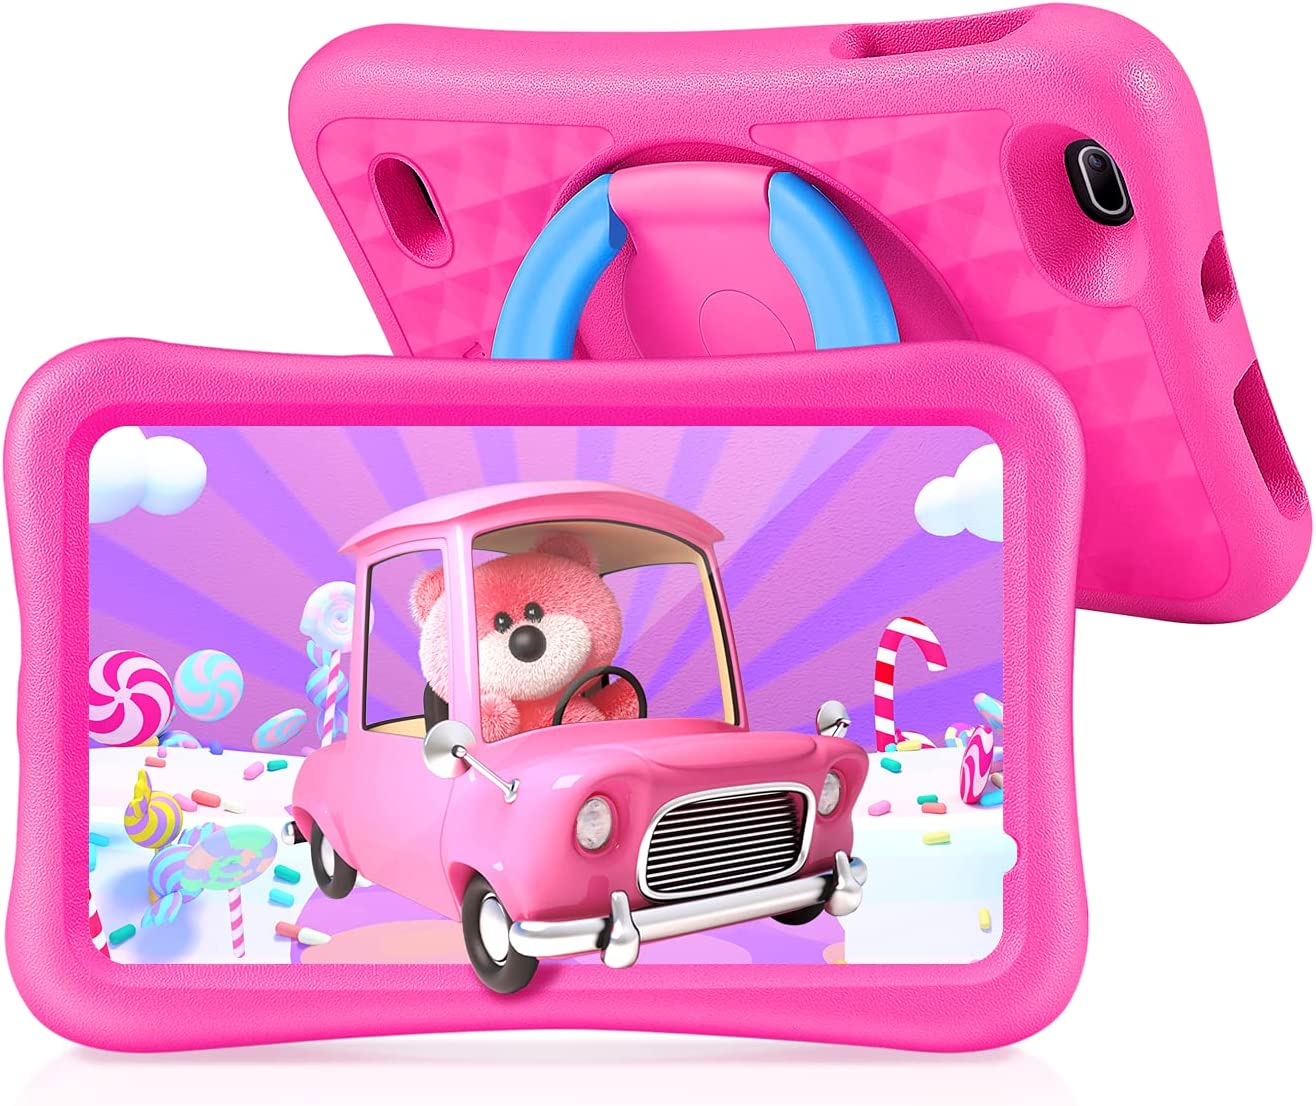 S8 8 Now on sale inch Kids Tablet Android OS ROM Kidoz RAM 2GB Pre 32GB Low price